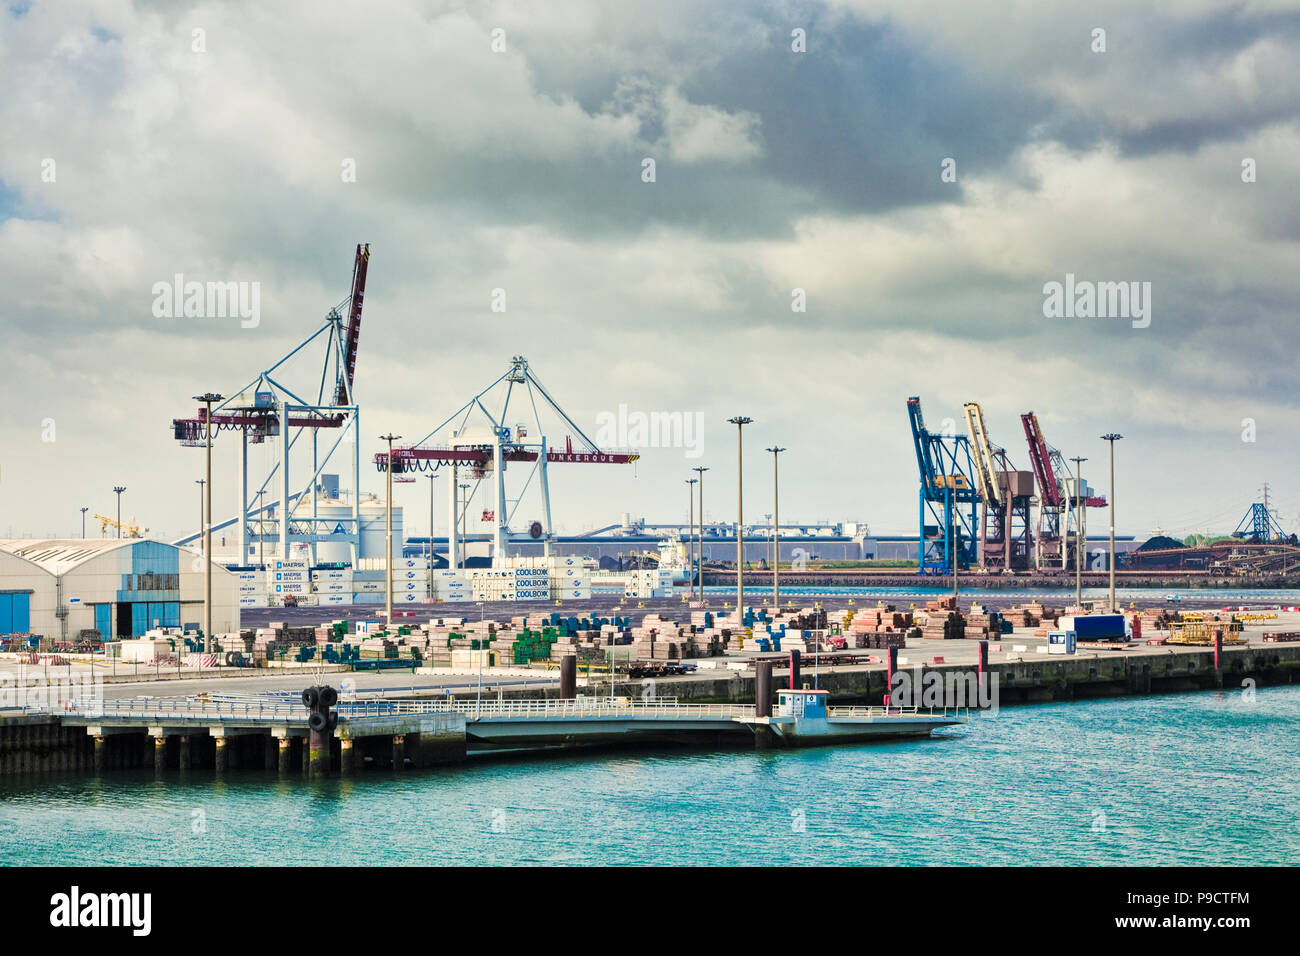 Cranes on the docks at the industrial port of Dunkirk, France, Europe - Stock Image